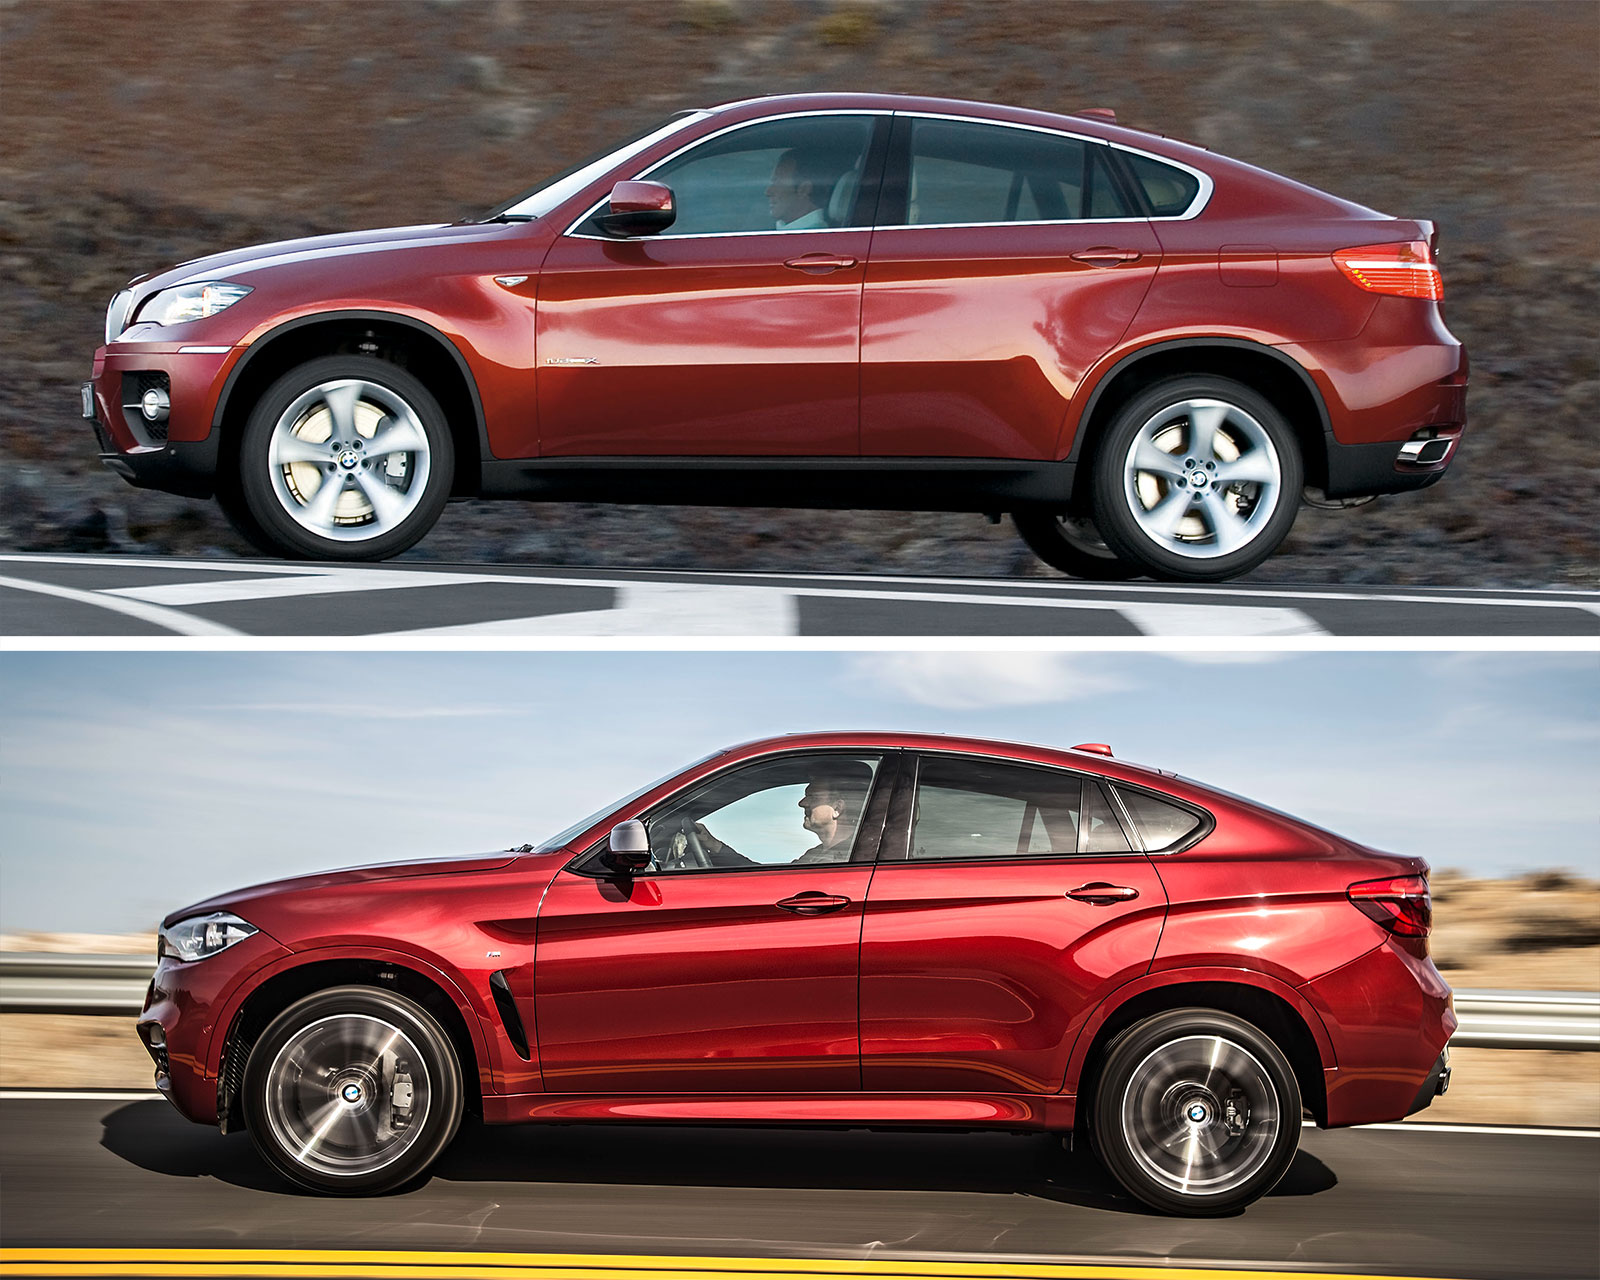 BMW X6 1st and 2nd generation - Design Comparison